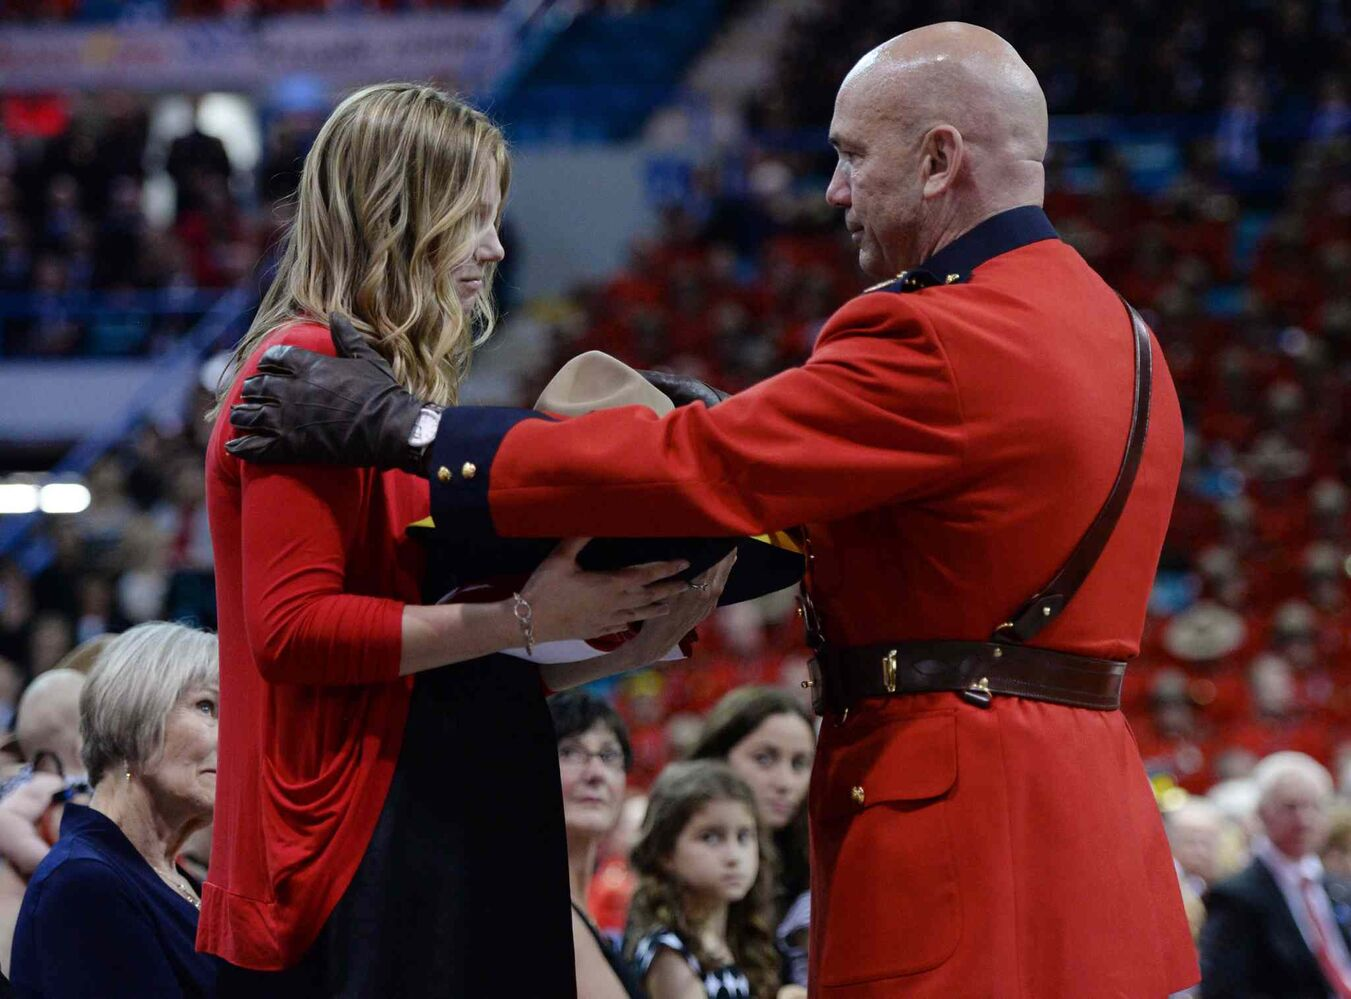 RCMP Commissioner Bob Paulson (right) presents Const. Dave Ross's widow Rachael with the slain RCMP officer's Stetson at a regimental funeral for the three slain officers. (Sean Kilpatrick / The Canadian Press)